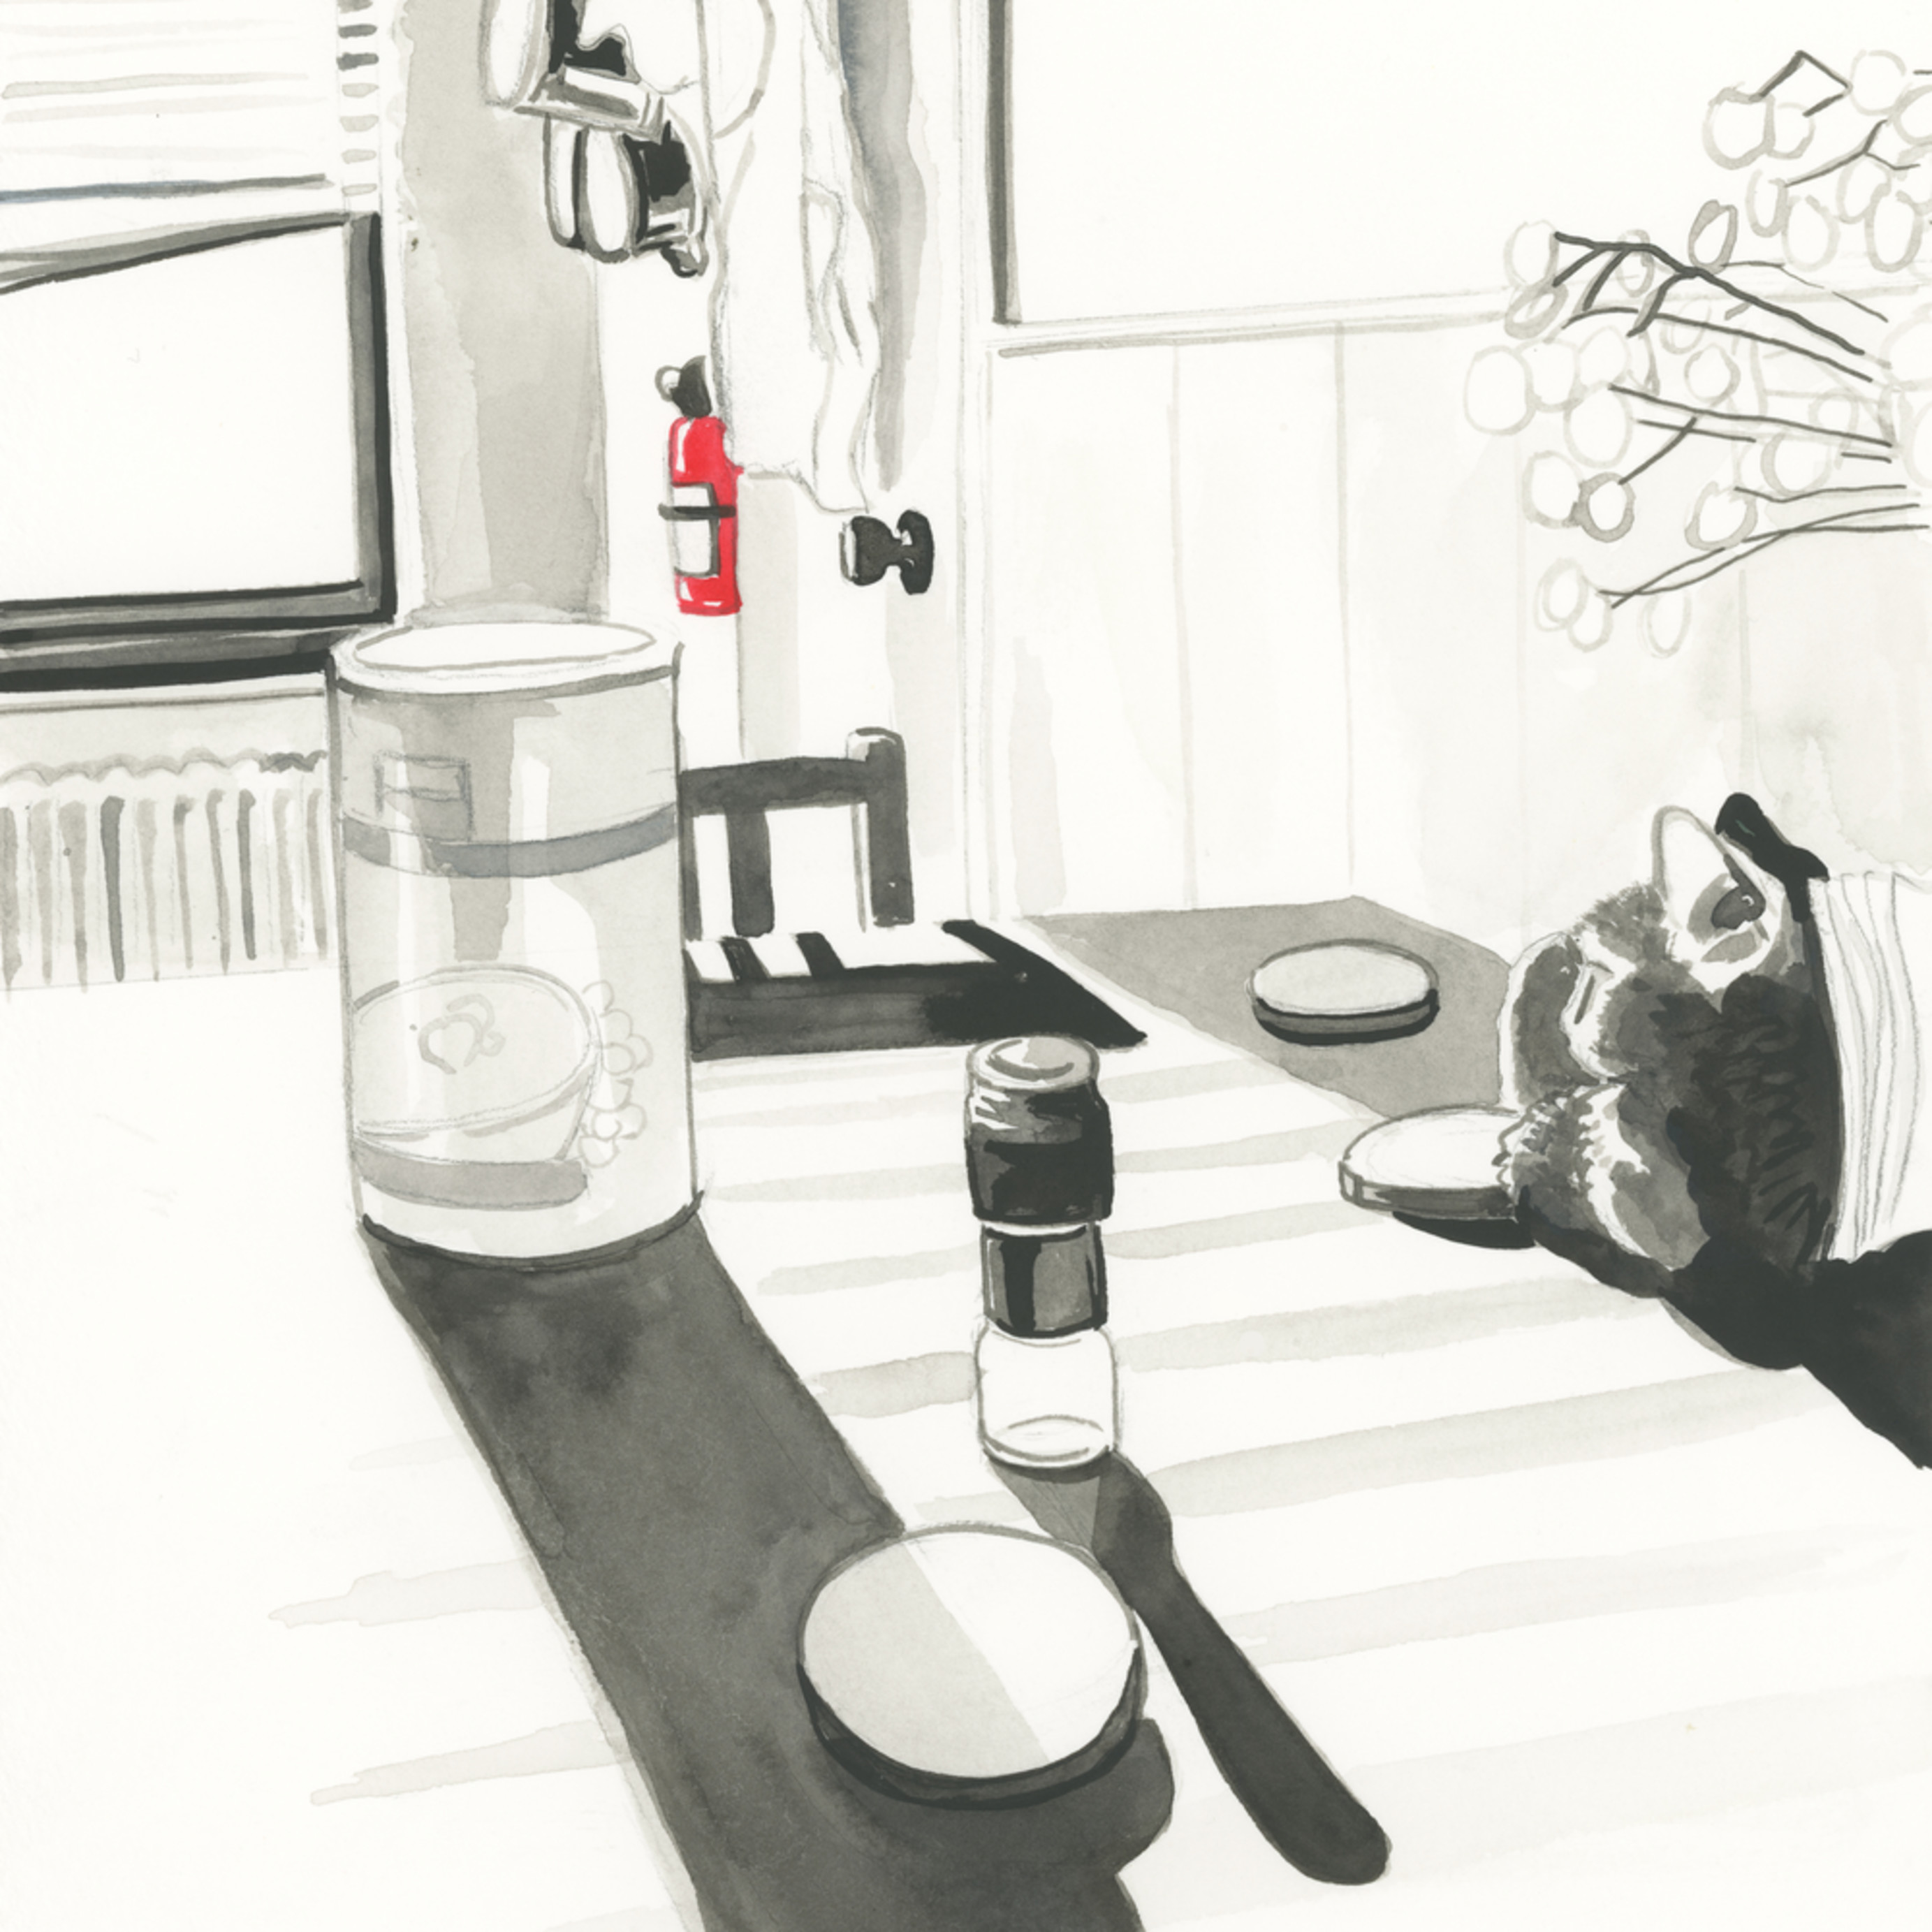 Kitchen table drawing mary younkin wetpaintnyc gallery h0hpse